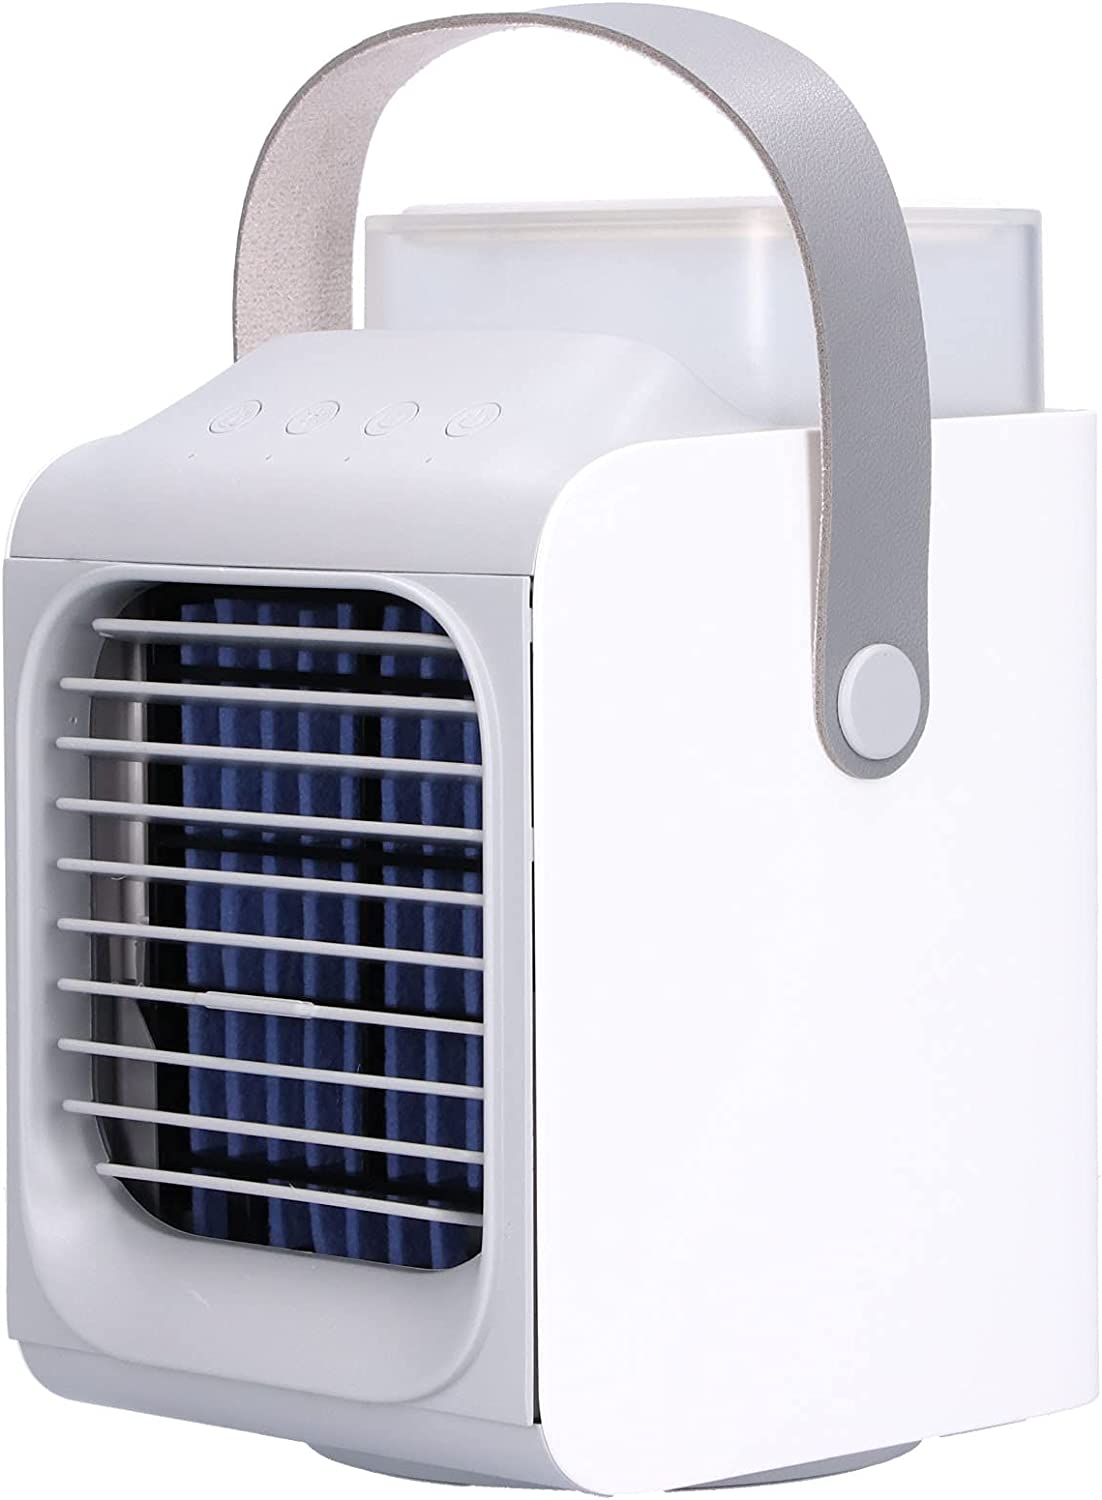 01 Filter All stores are sold Cooling Fan USB Charging Shaking Degree Max 61% OFF 90 Air C Head